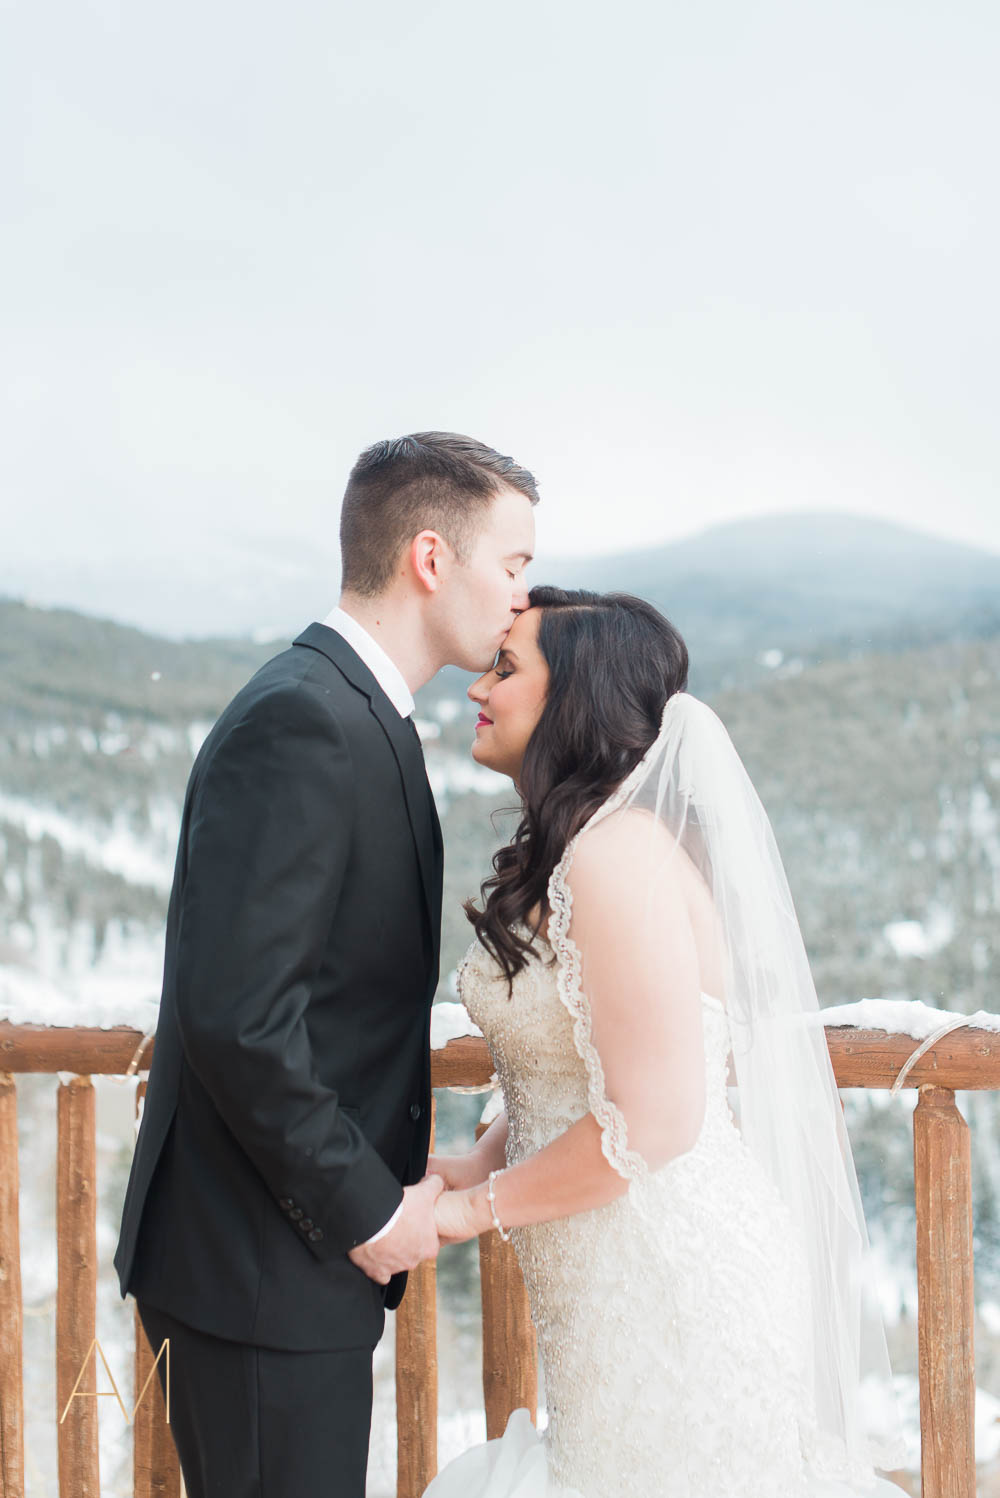 AshleighMillerPhotography-FirstLook-Colorado-Weddings-1983.jpg